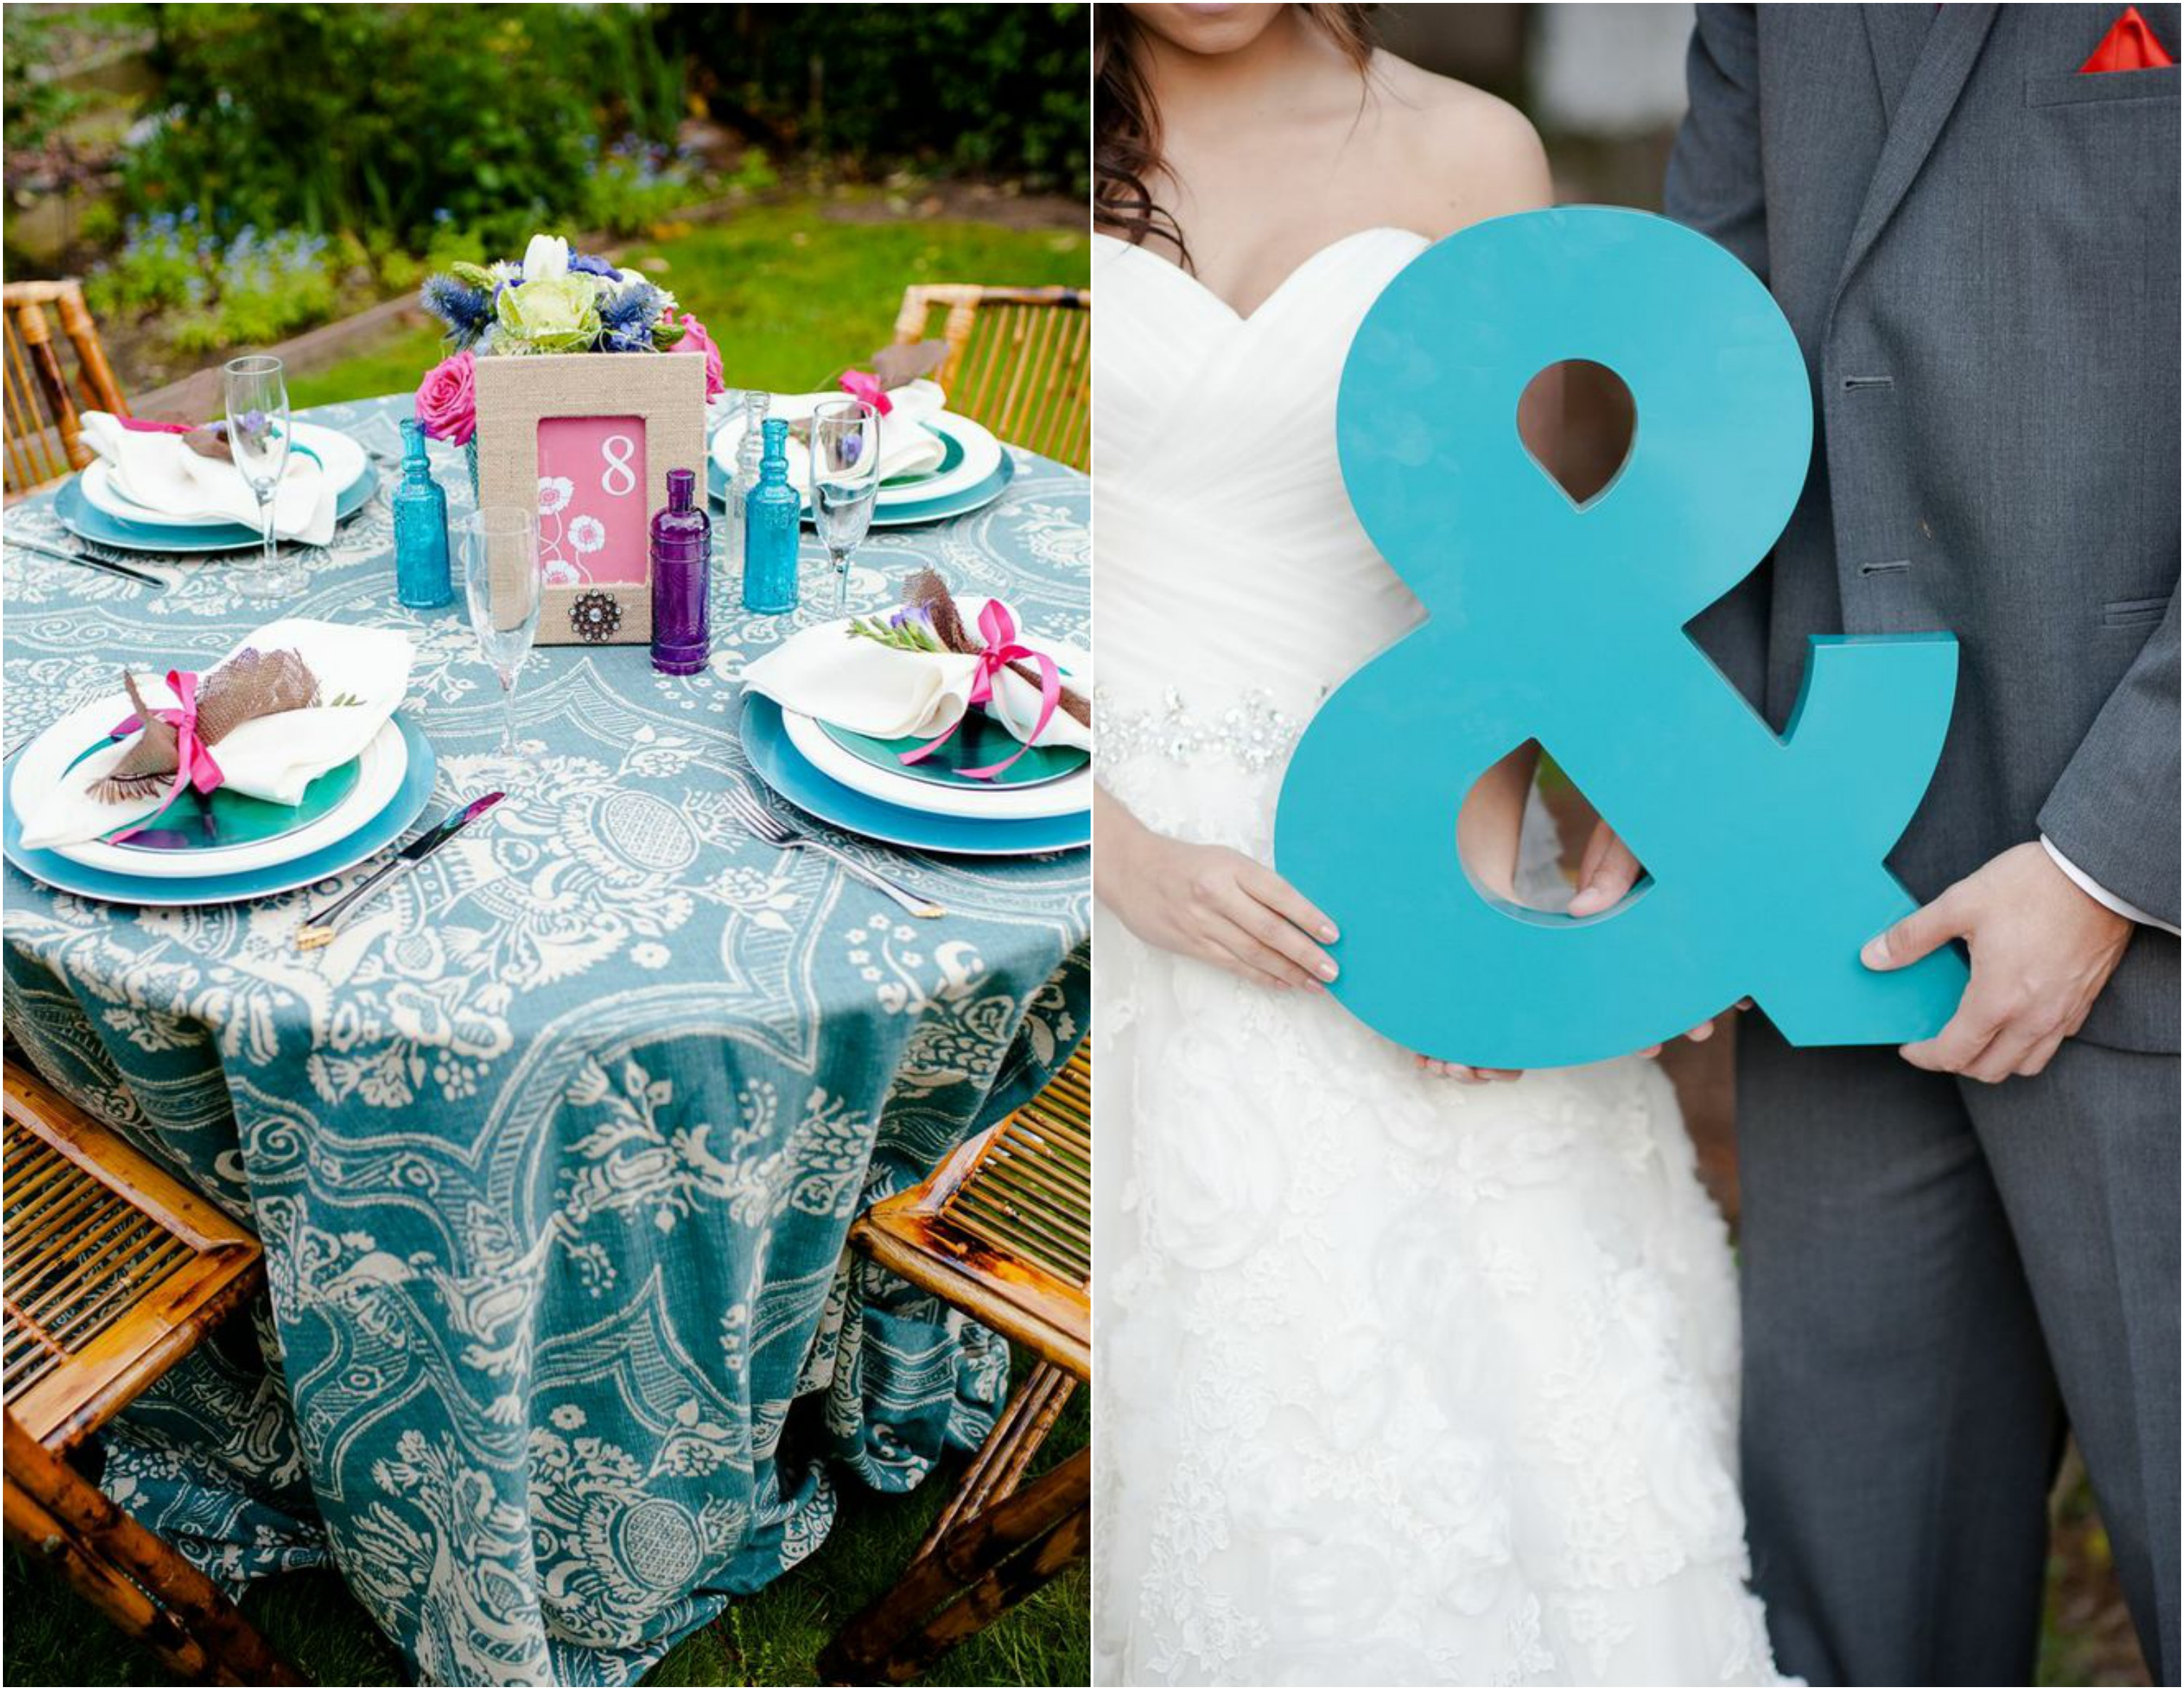 Turquoise Wedding Supplies, Turquoise Wedding Theme, Wedding Shop By Color. Find a variety of Turquoise Wedding Supplies at Oriental Trading. Accent your Turquoise Wedding Theme with decorations and Turquoise wedding supplies. Enjoy our Wedding Shop By Color experience for your special day. The perfect decorations for any party, holiday or.